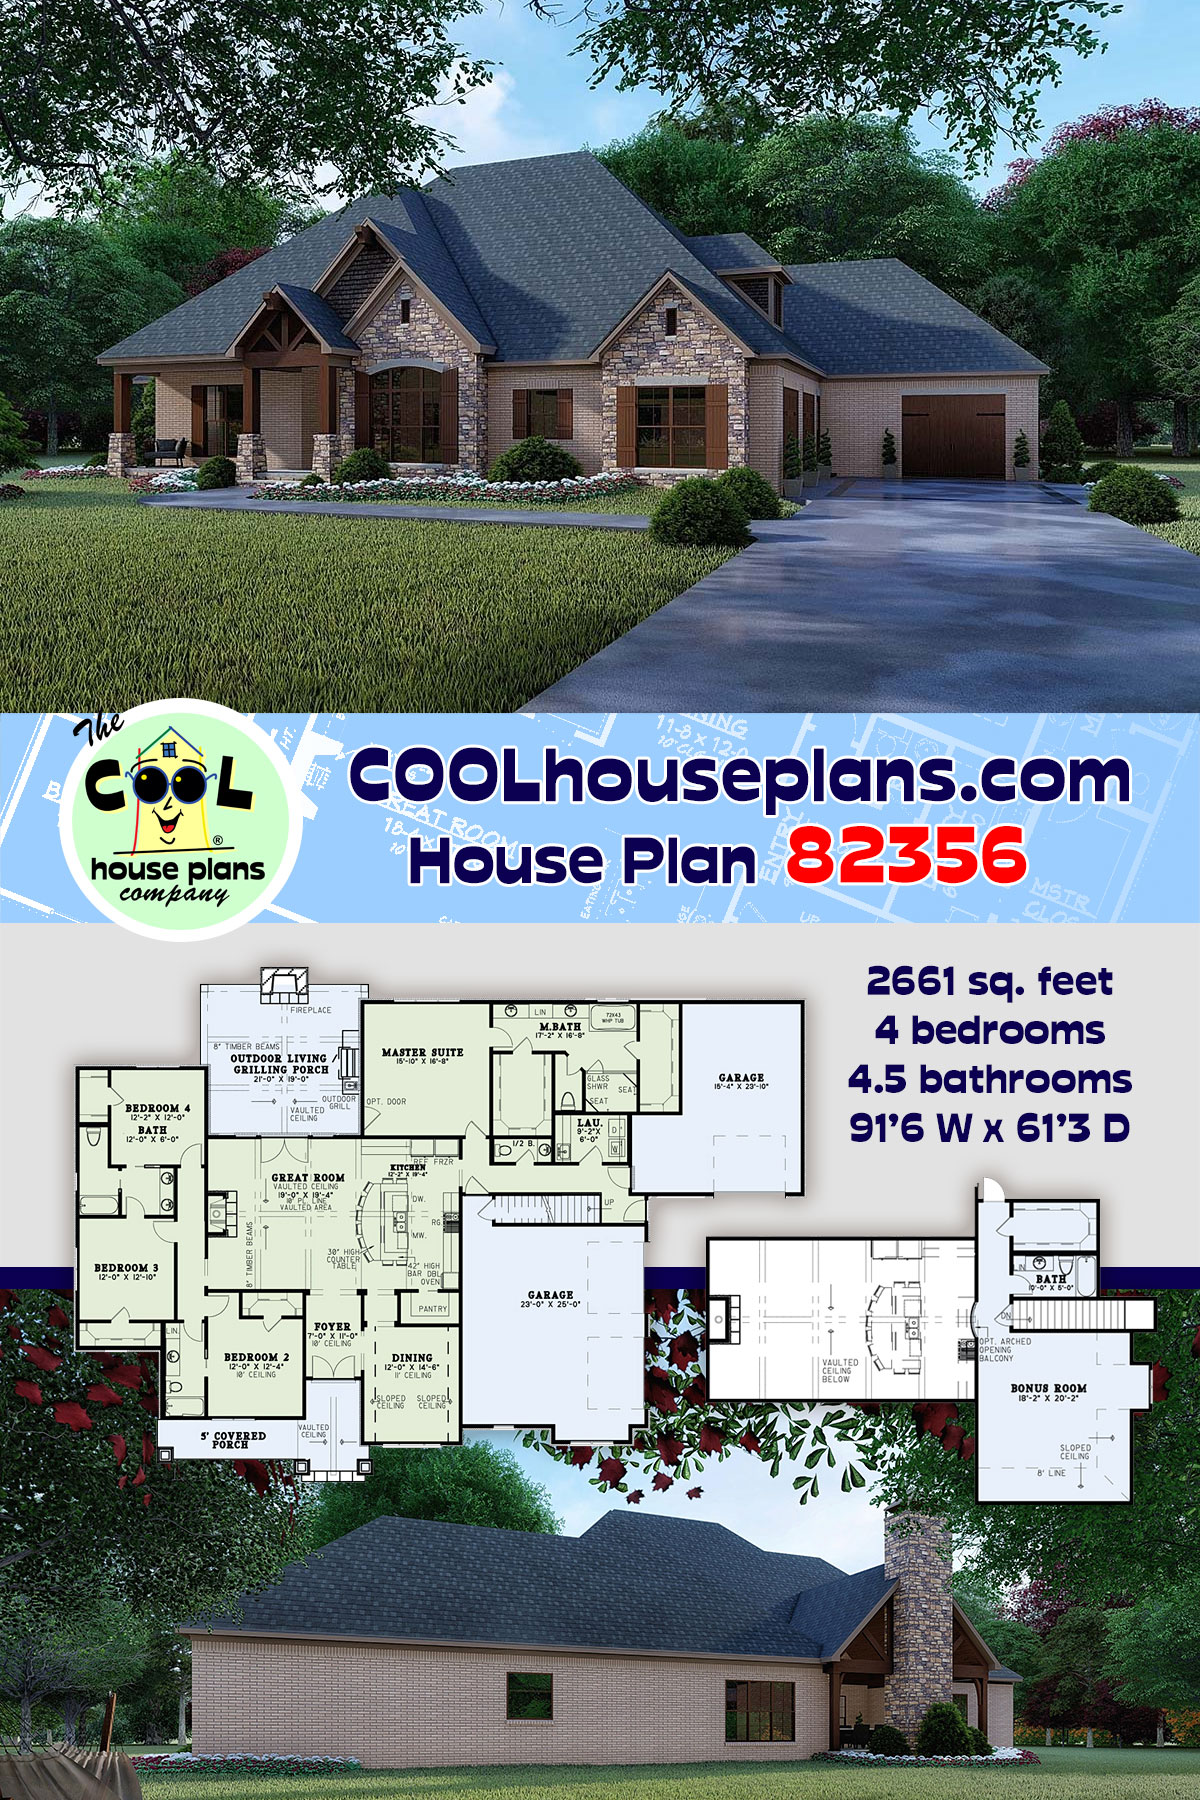 Craftsman, European House Plan 82356 with 4 Beds, 5 Baths, 3 Car Garage